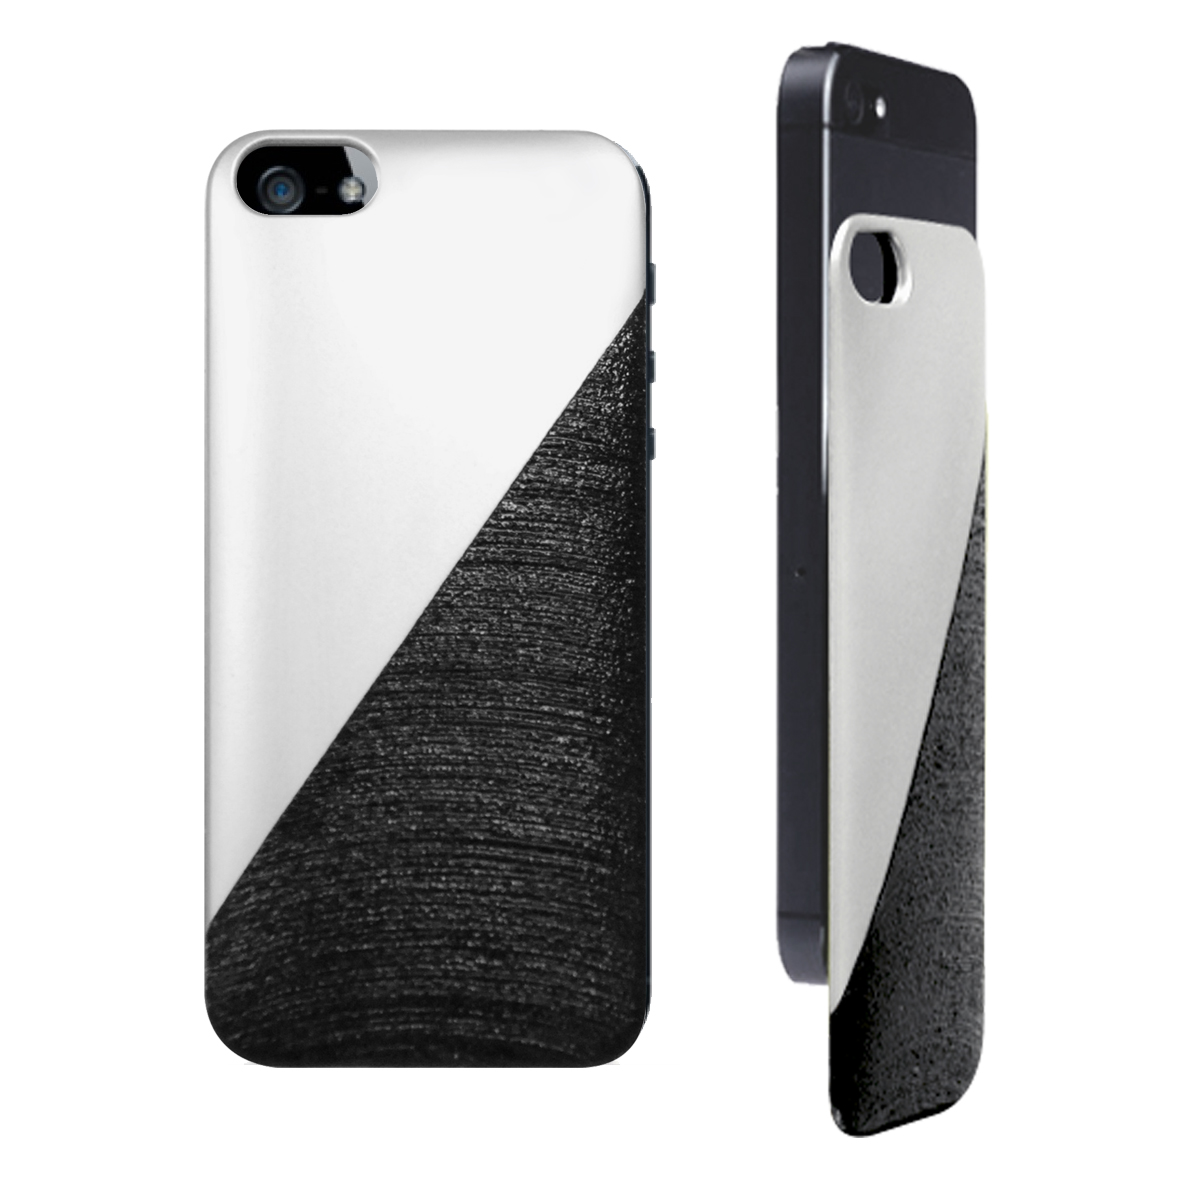 iphone case, 2013